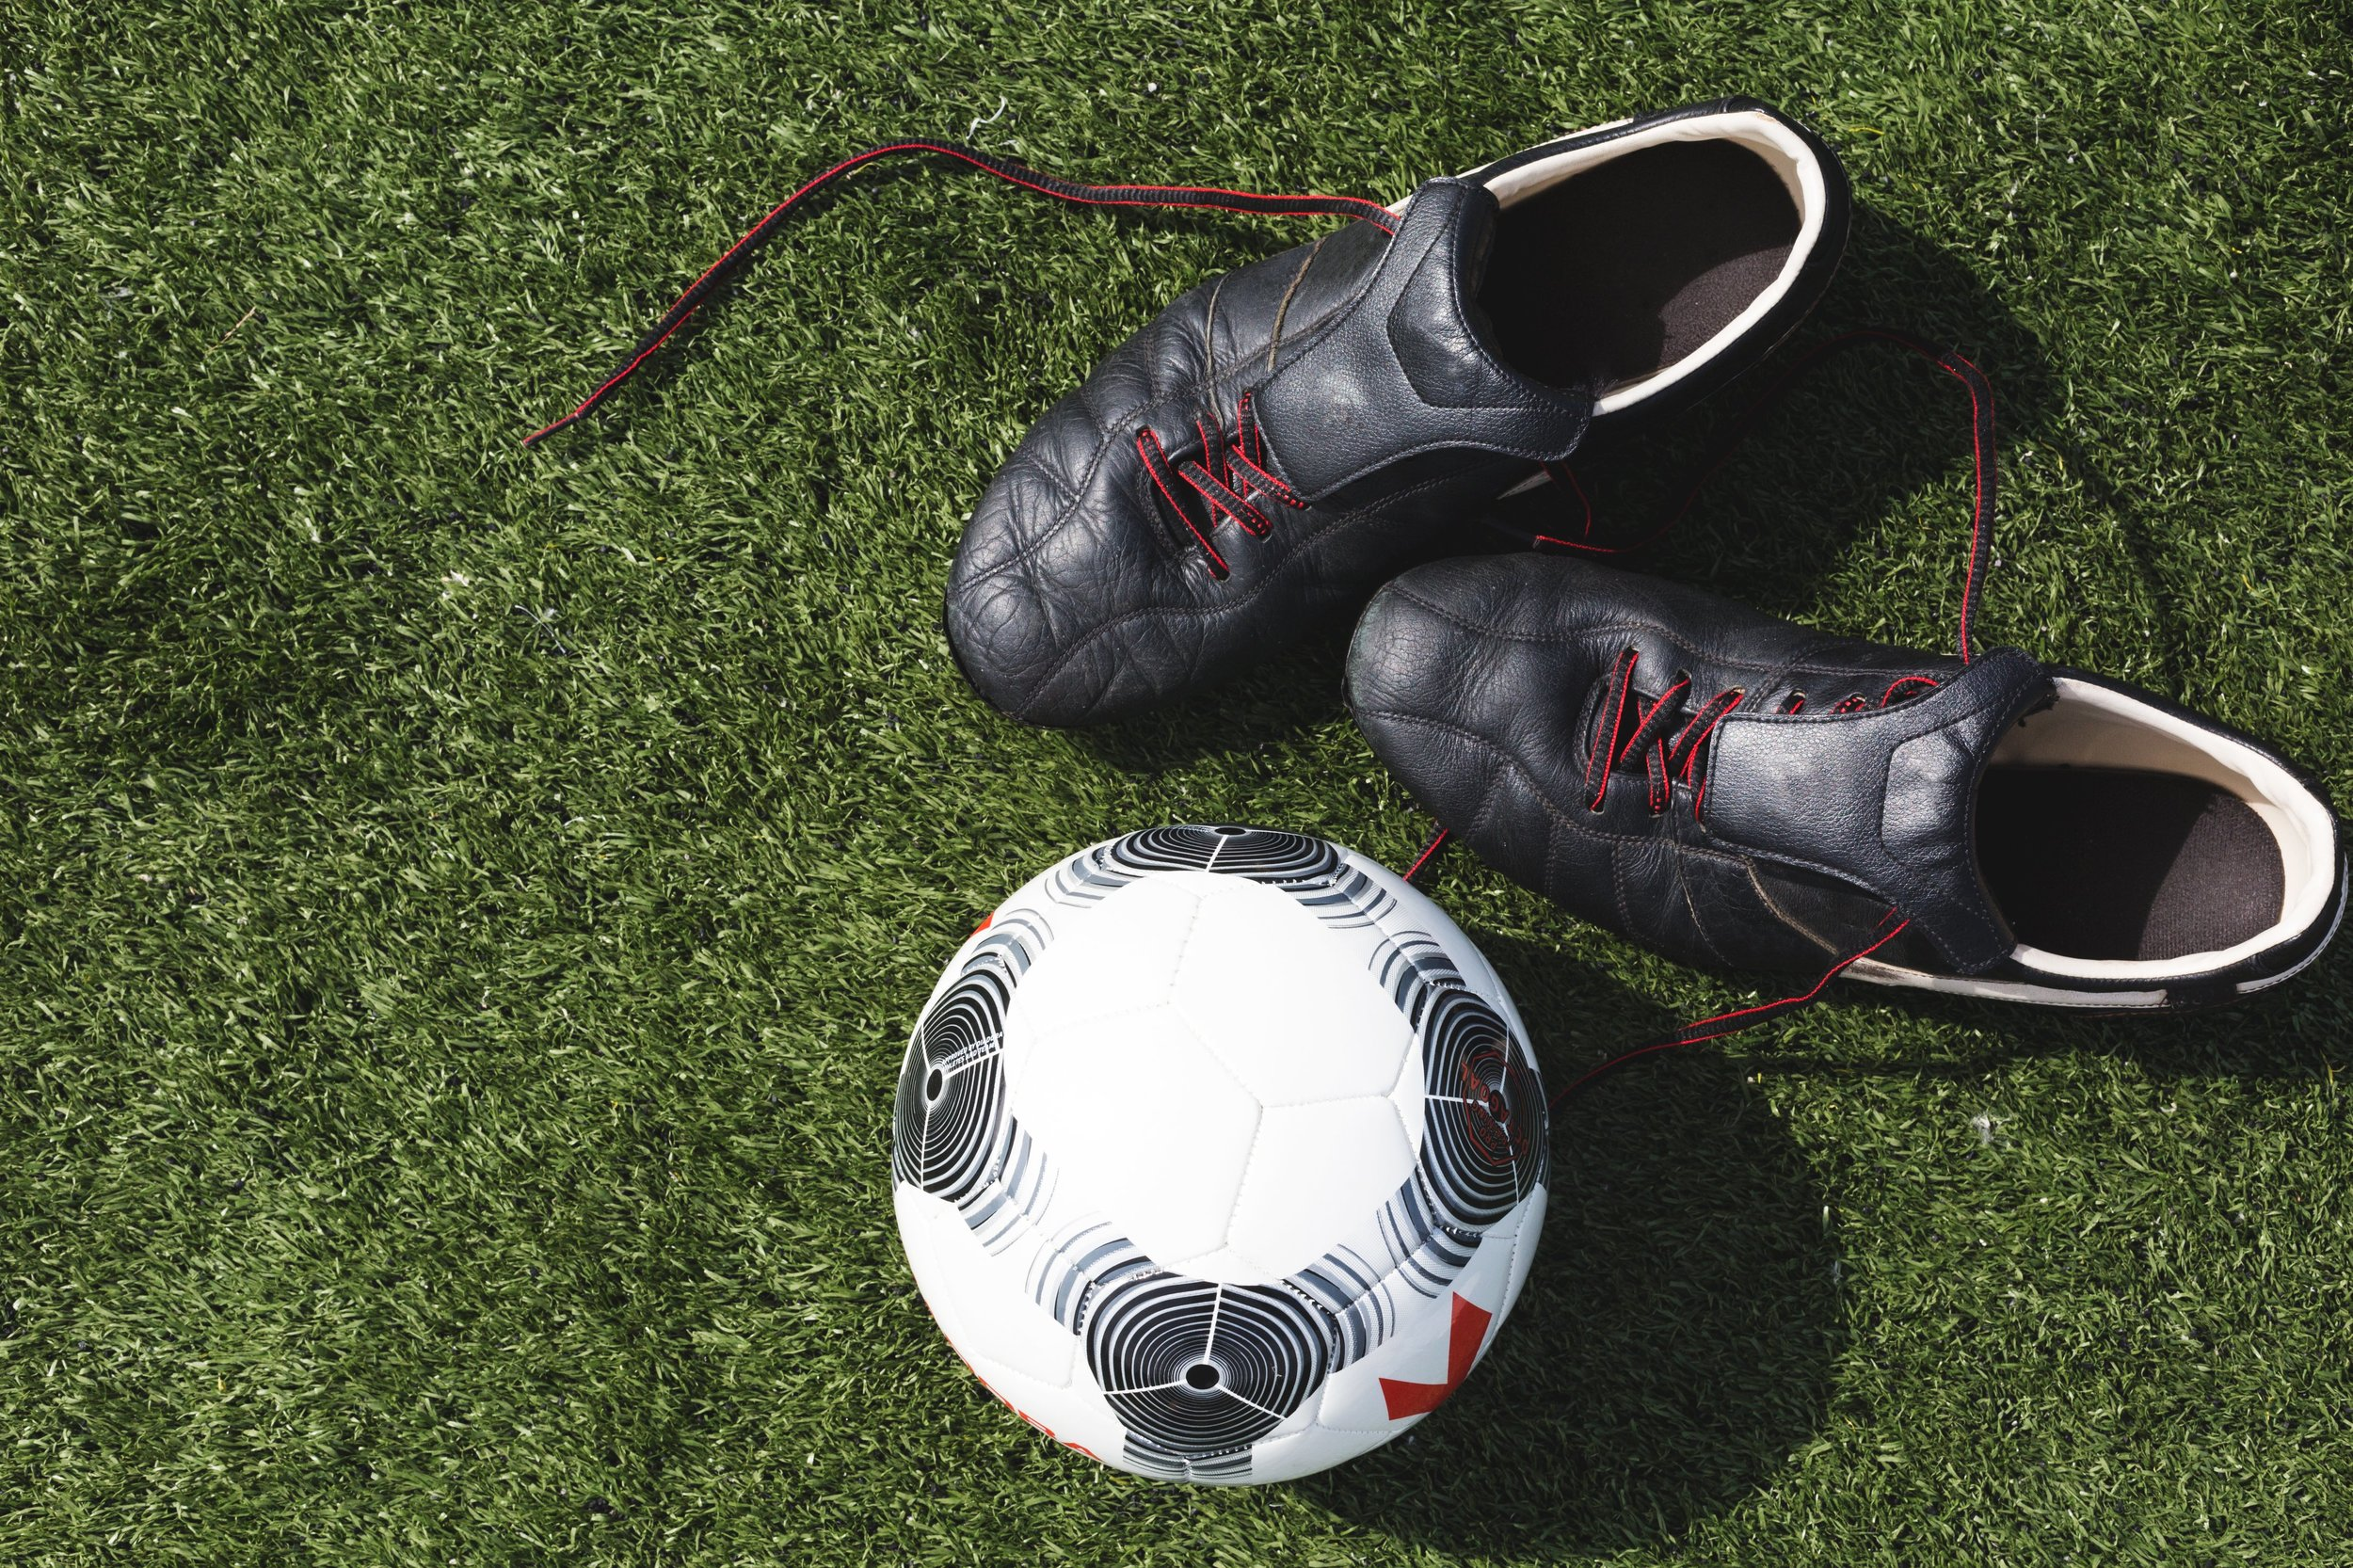 soccer-cleats-and-ball.jpg